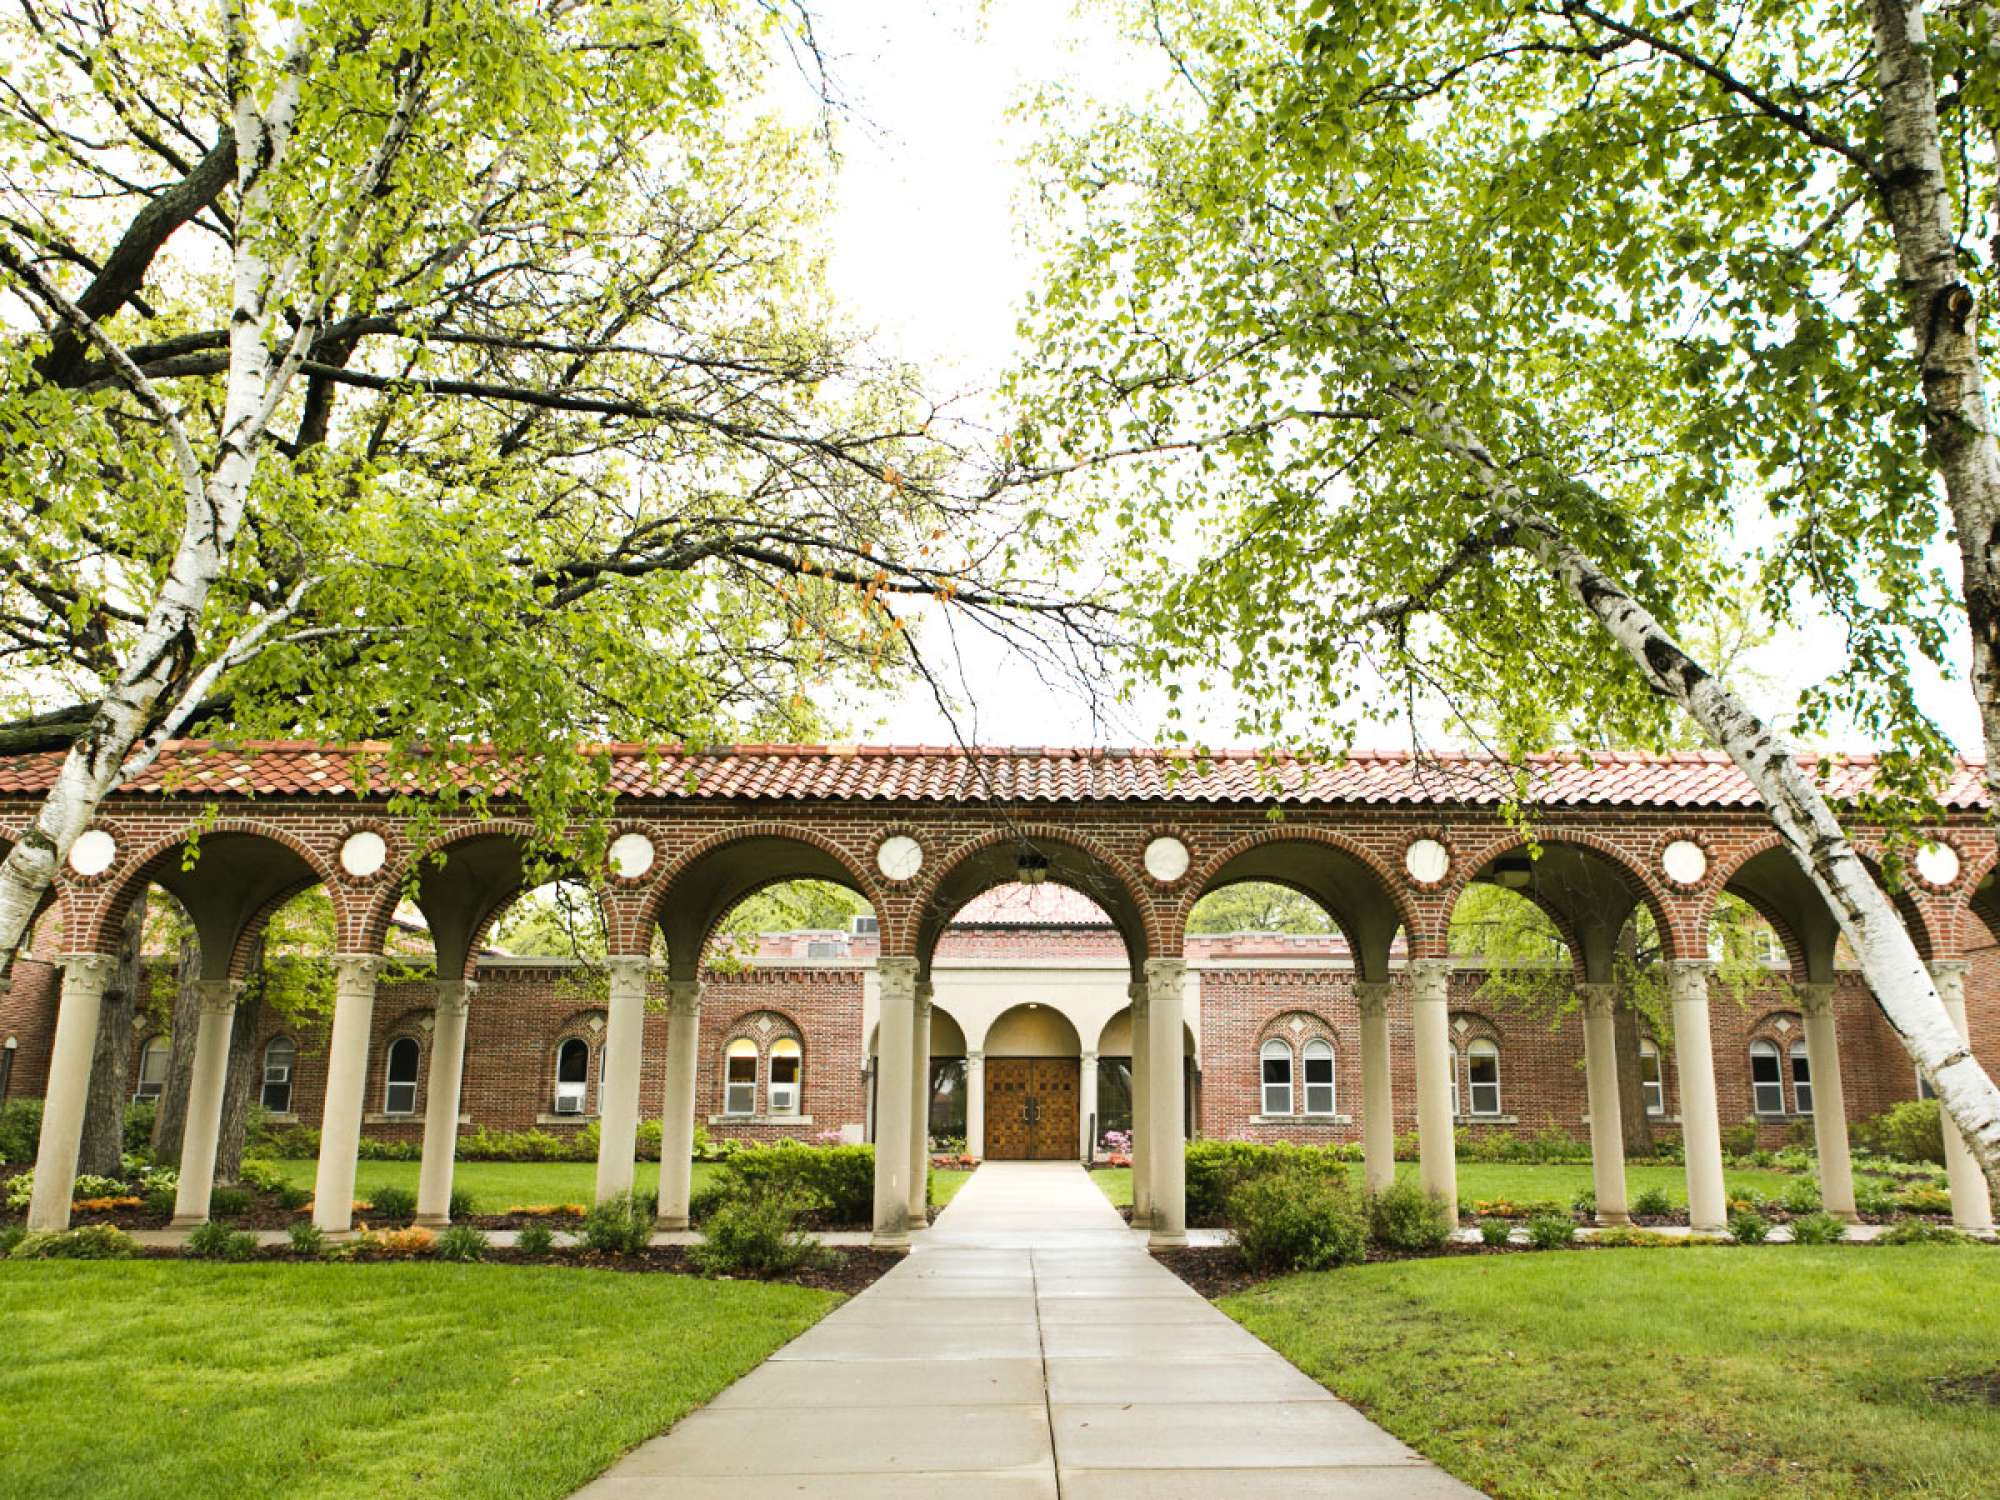 Front view through the arches of Riley Hall